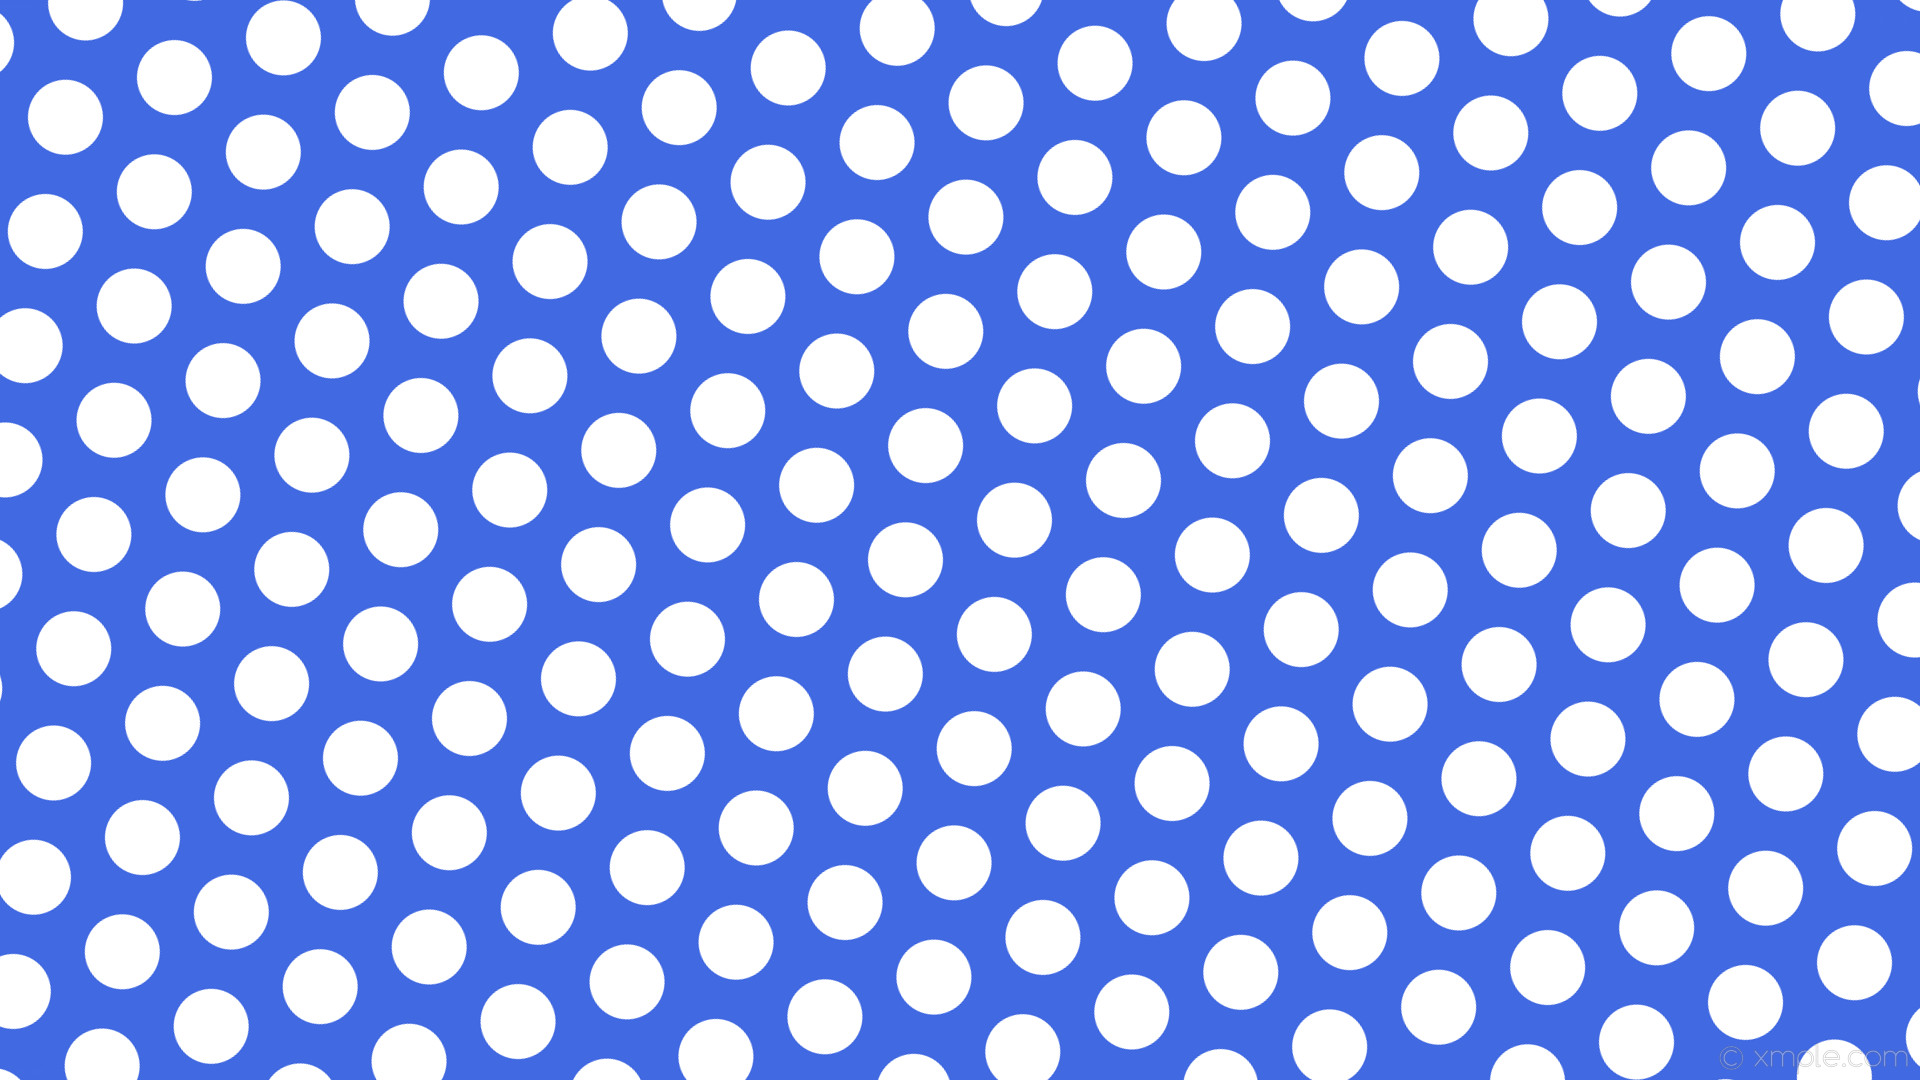 wallpaper blue polka dots hexagon white royal blue #4169e1 #ffffff diagonal  20° 75px